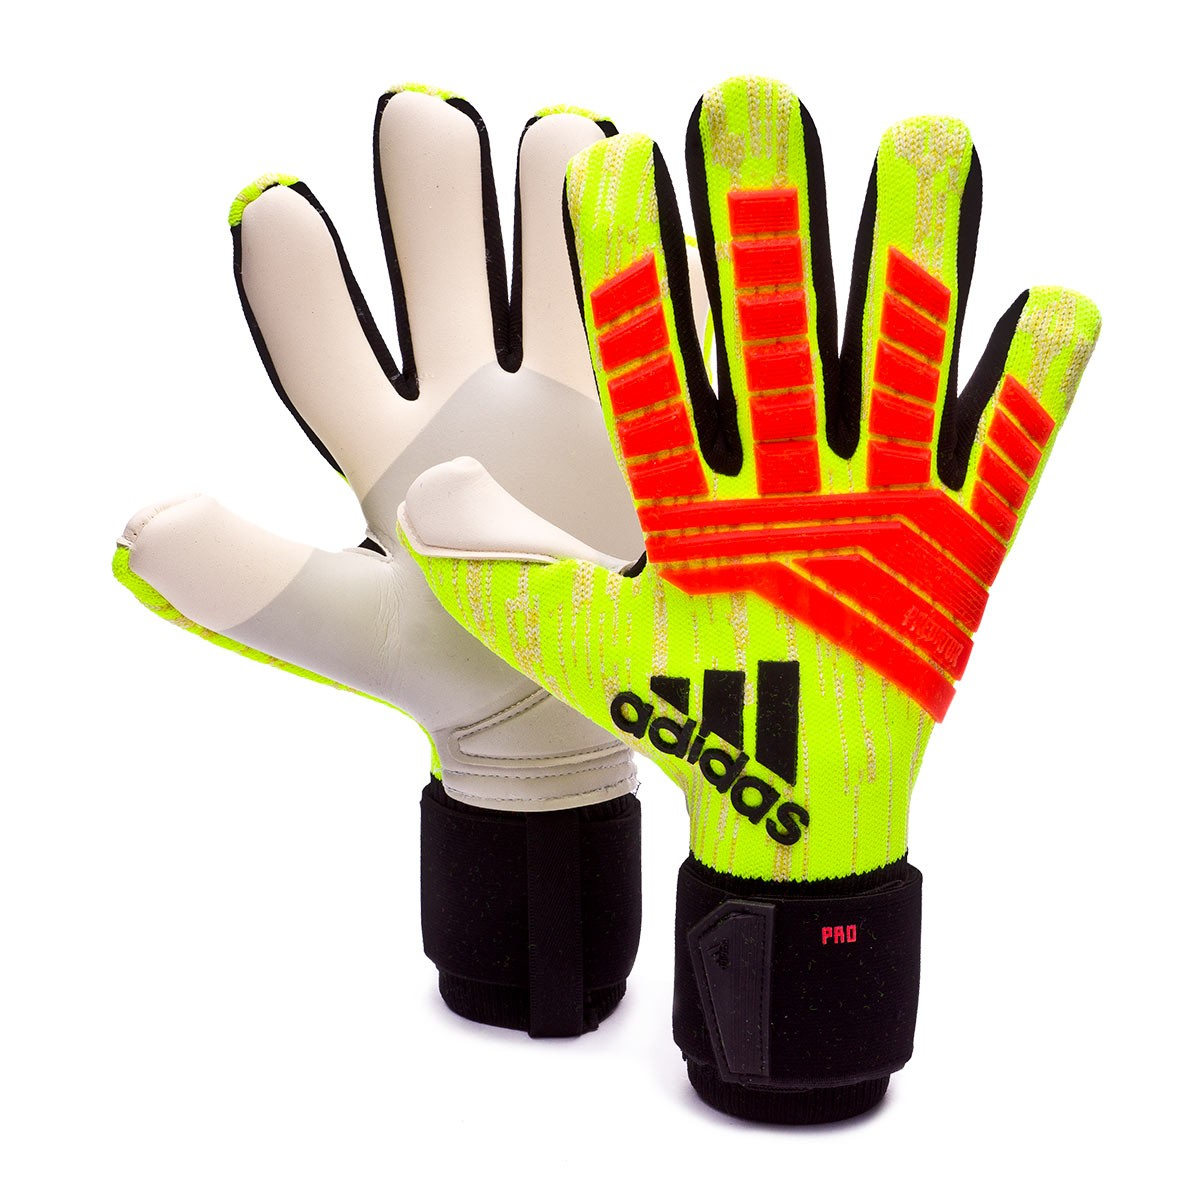 100% high quality lowest price cheap for sale adidas Predator Pro Glove